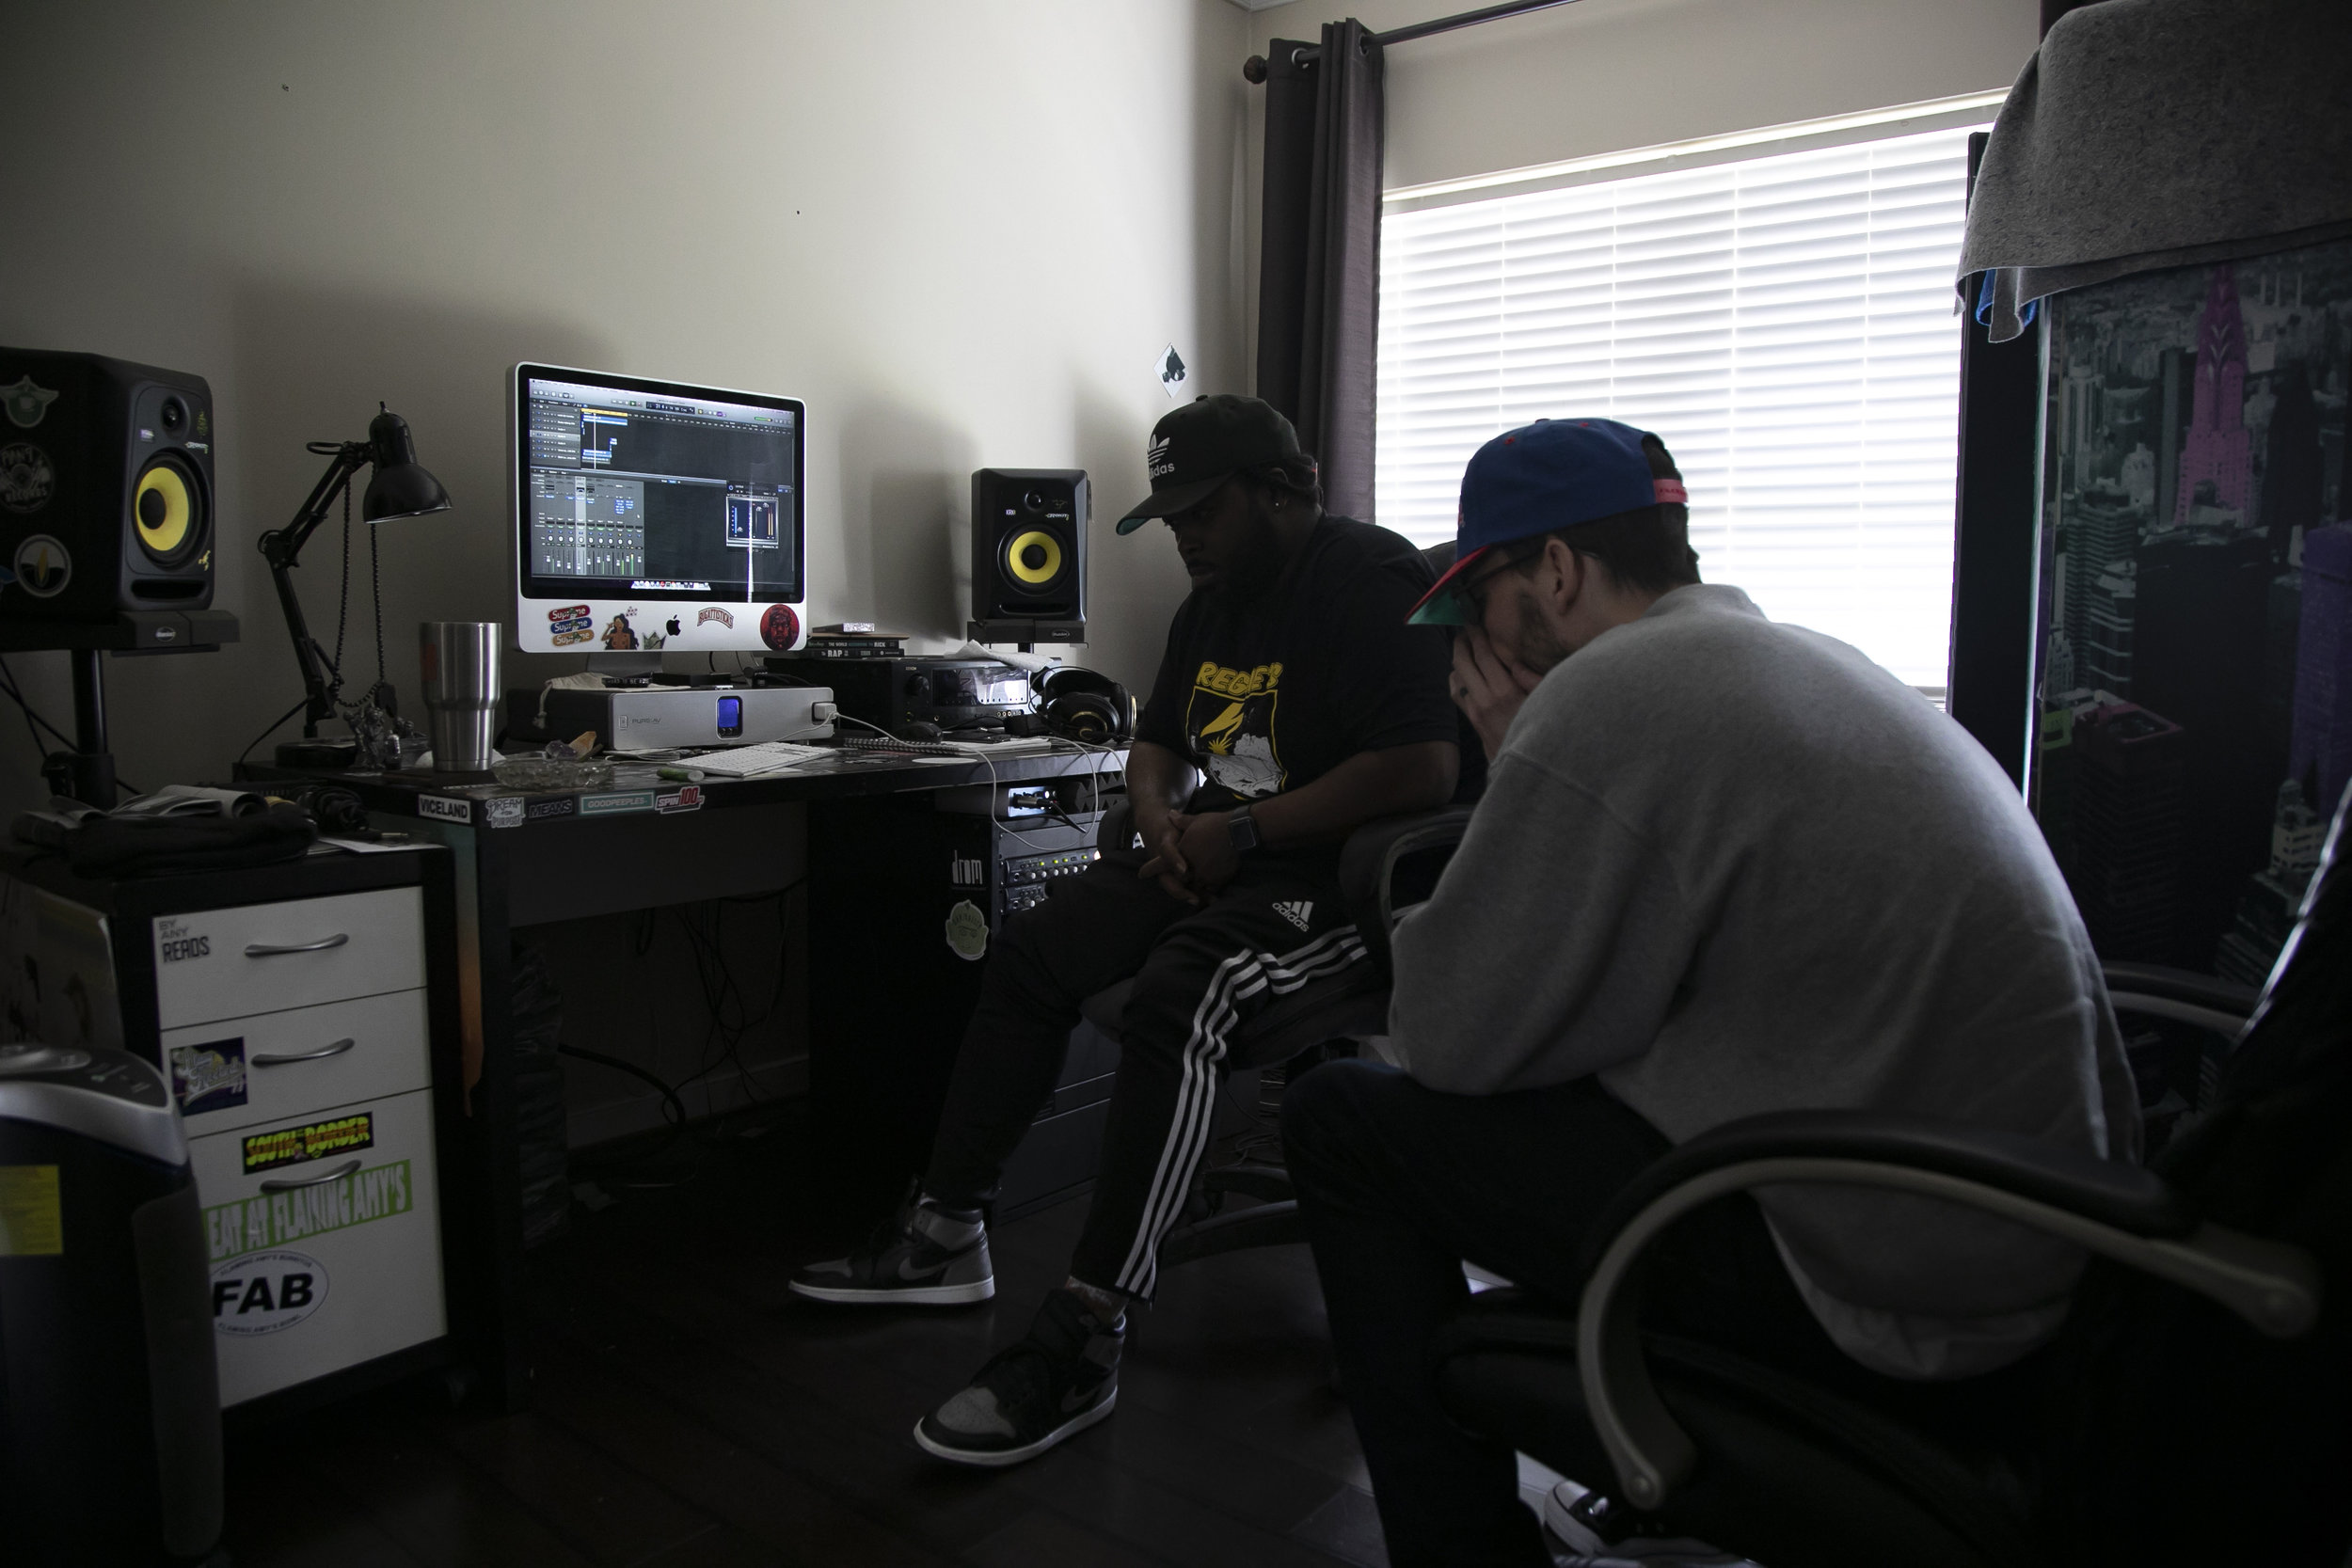 Mike and Richmond Producer Fan Ran listen for any production issues on the final cut of an unreleased album on March 30, 2019 in Richmond, Virginia. Most of Mike's time is spent mixing and mastering projects for both local and high profile artists, it's his breadwinner.